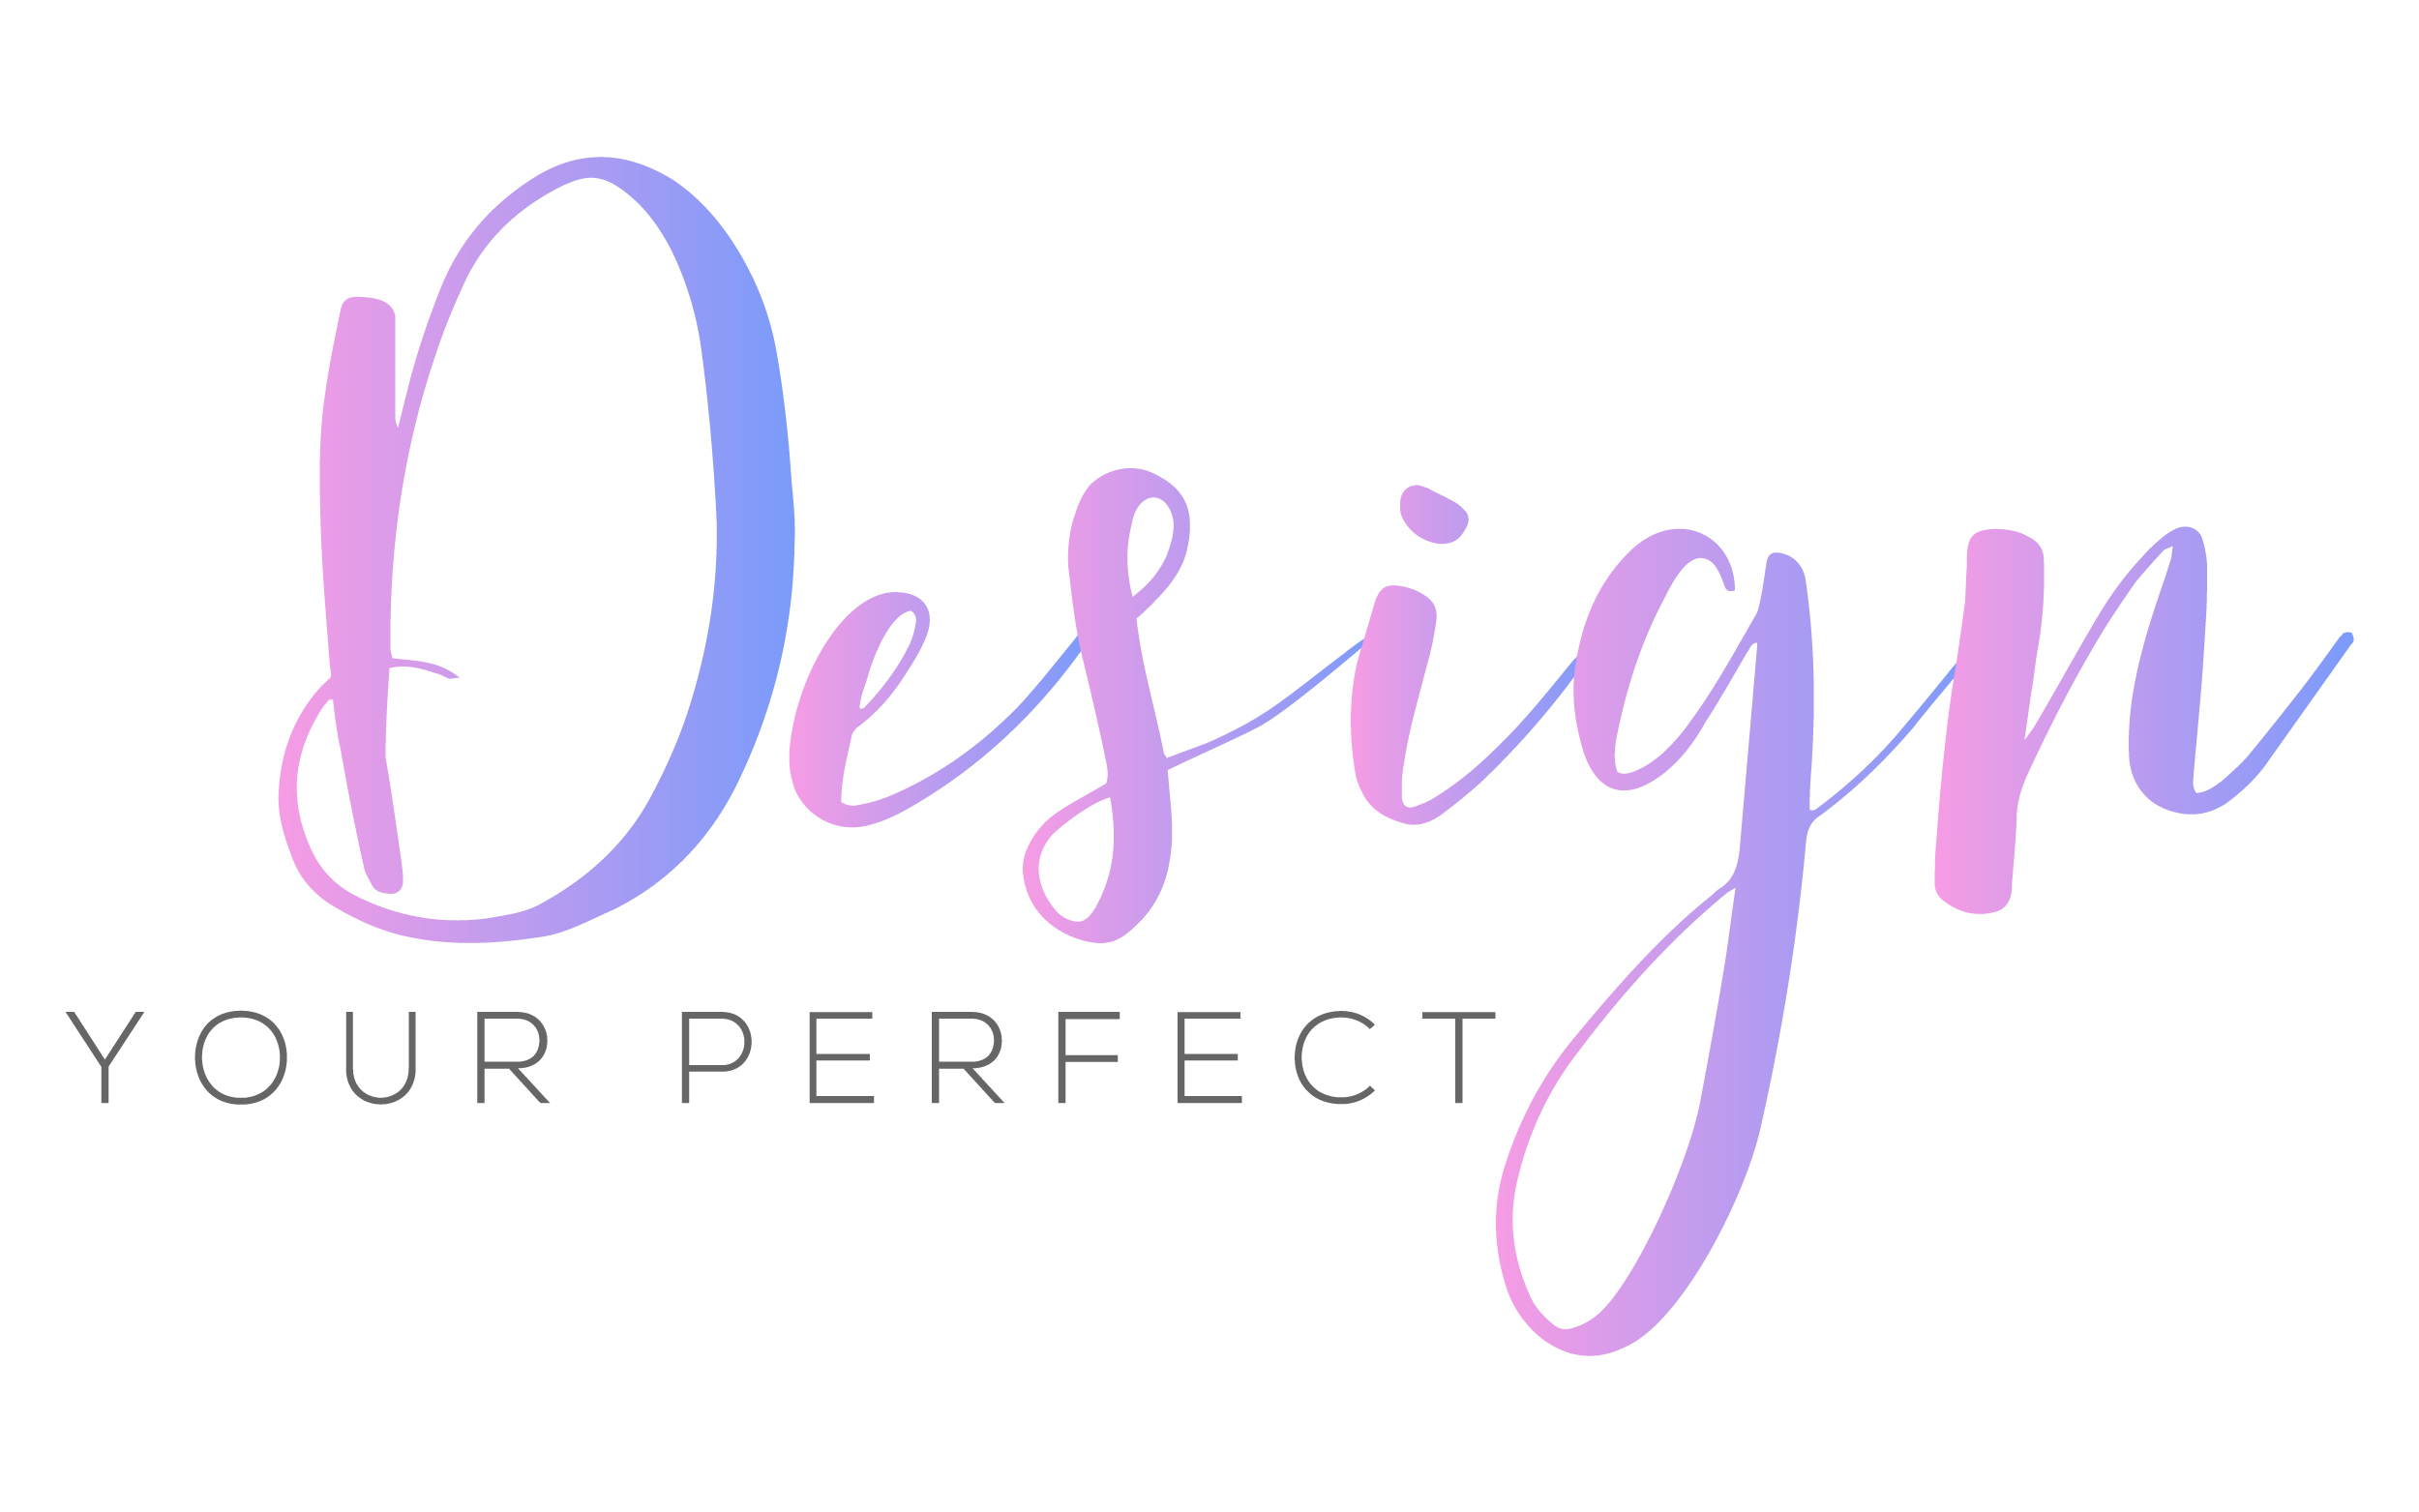 your_perfect_design_logo